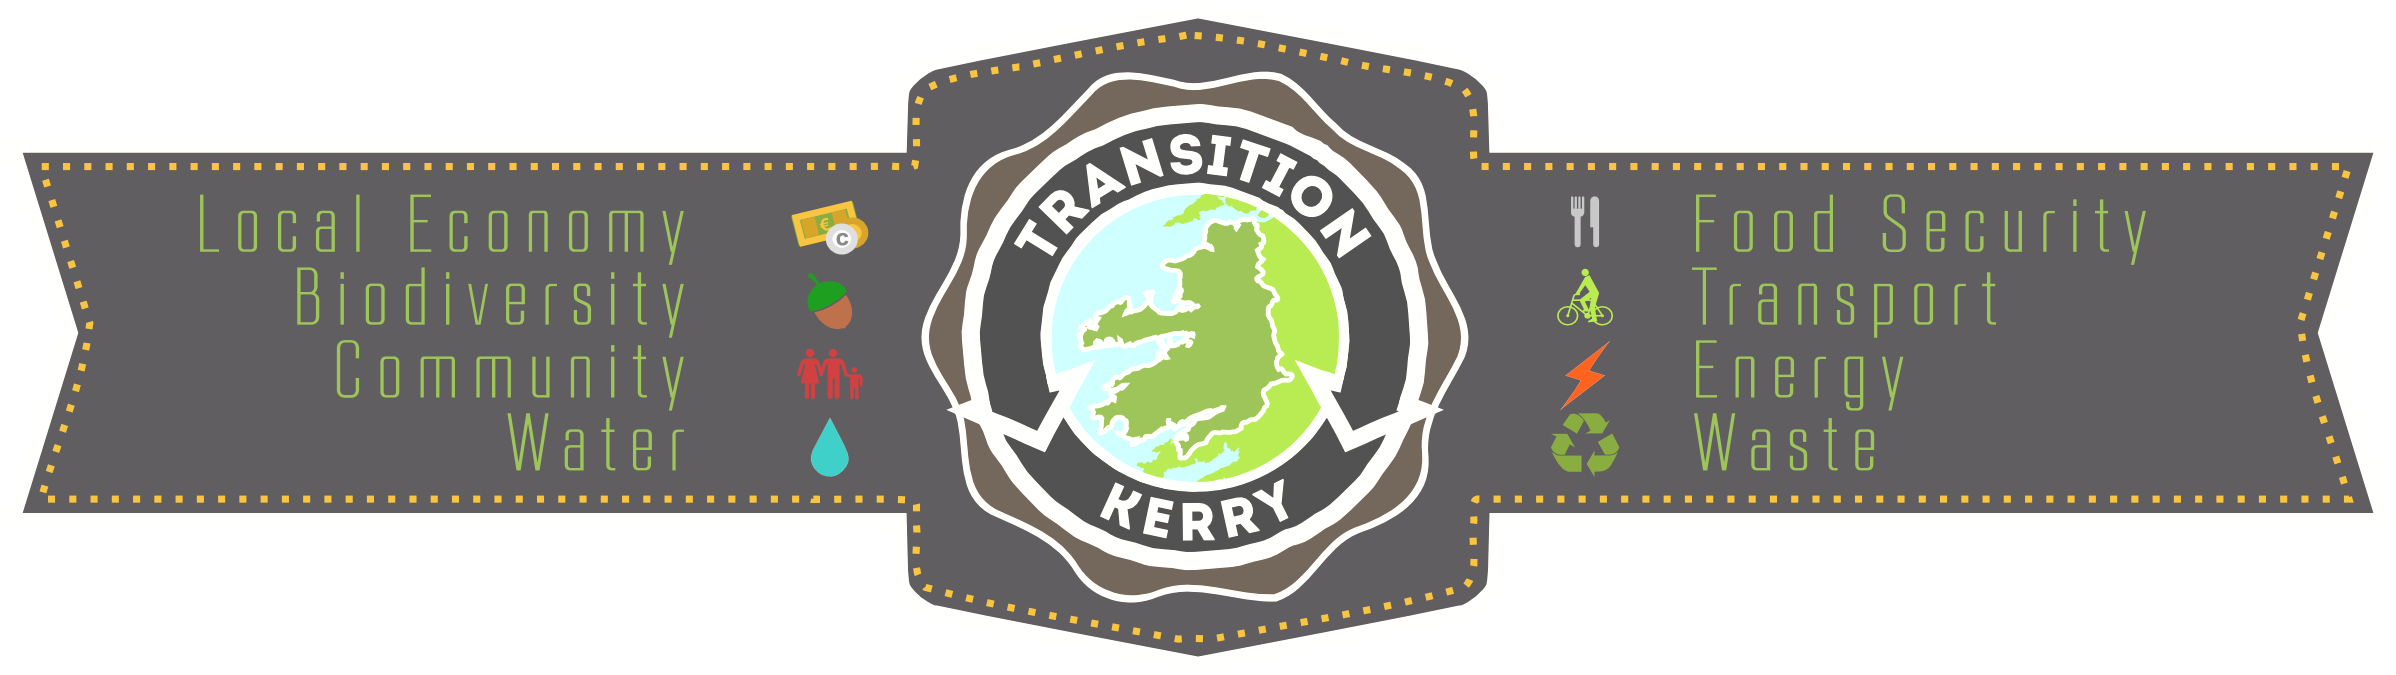 Transition Kerry Logo